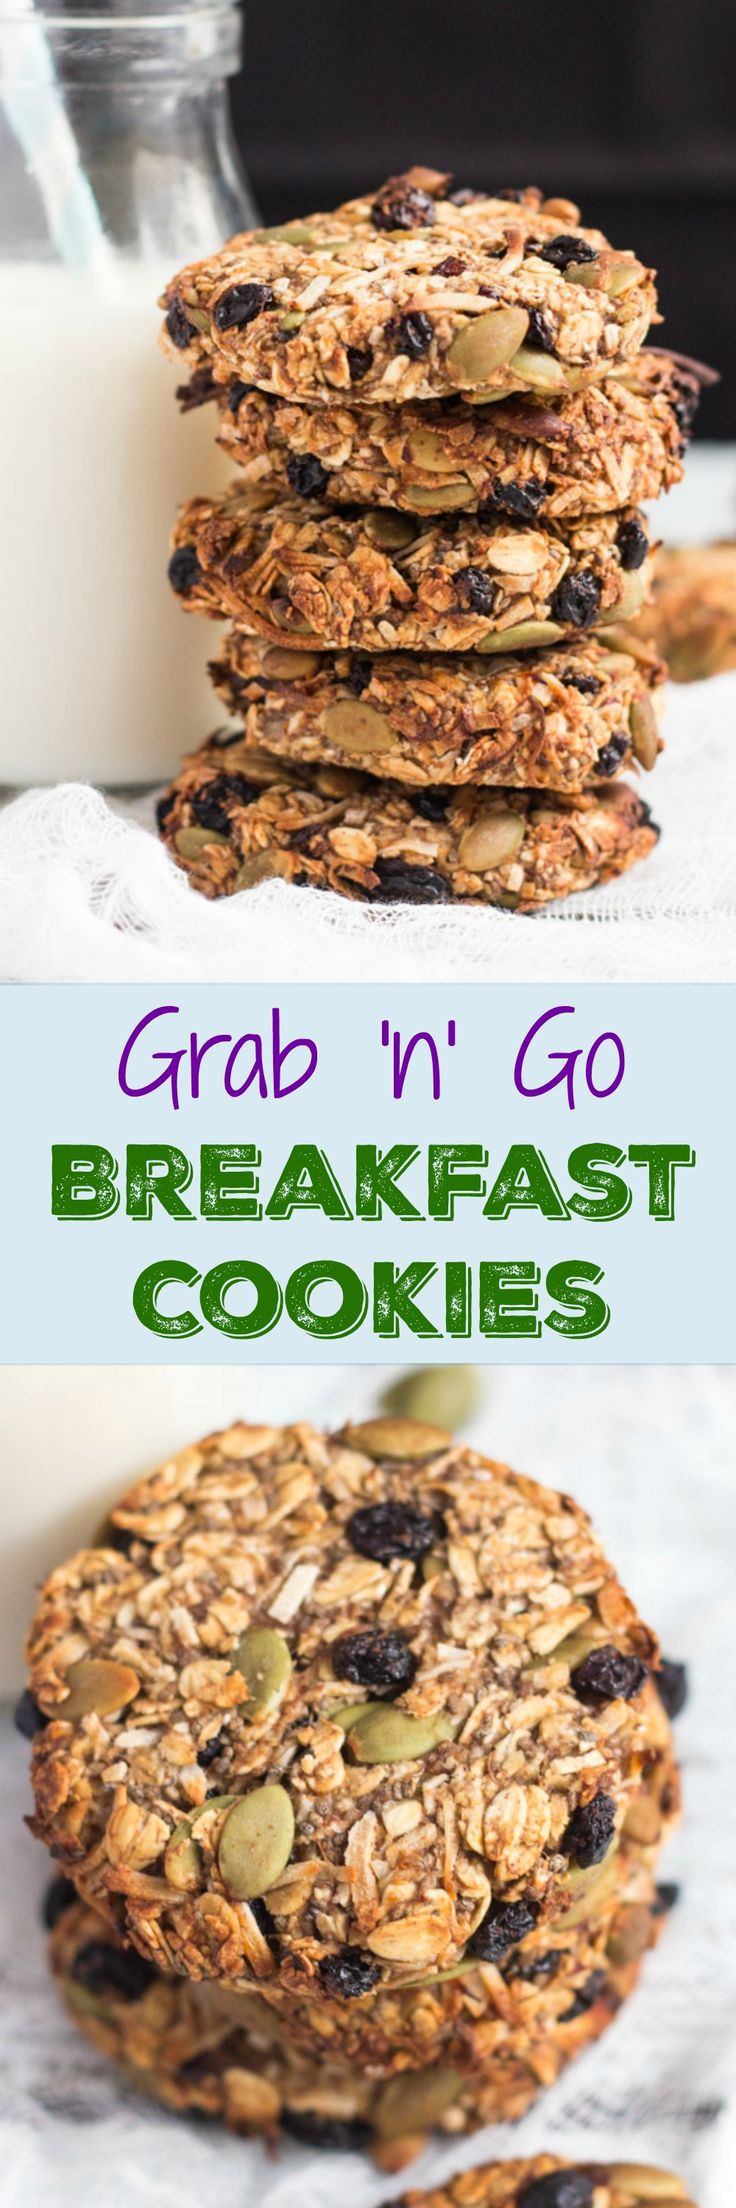 Healthy Breakfast Baked Goods  Grab and Go Breakfast Cookies – Recipes From Pins